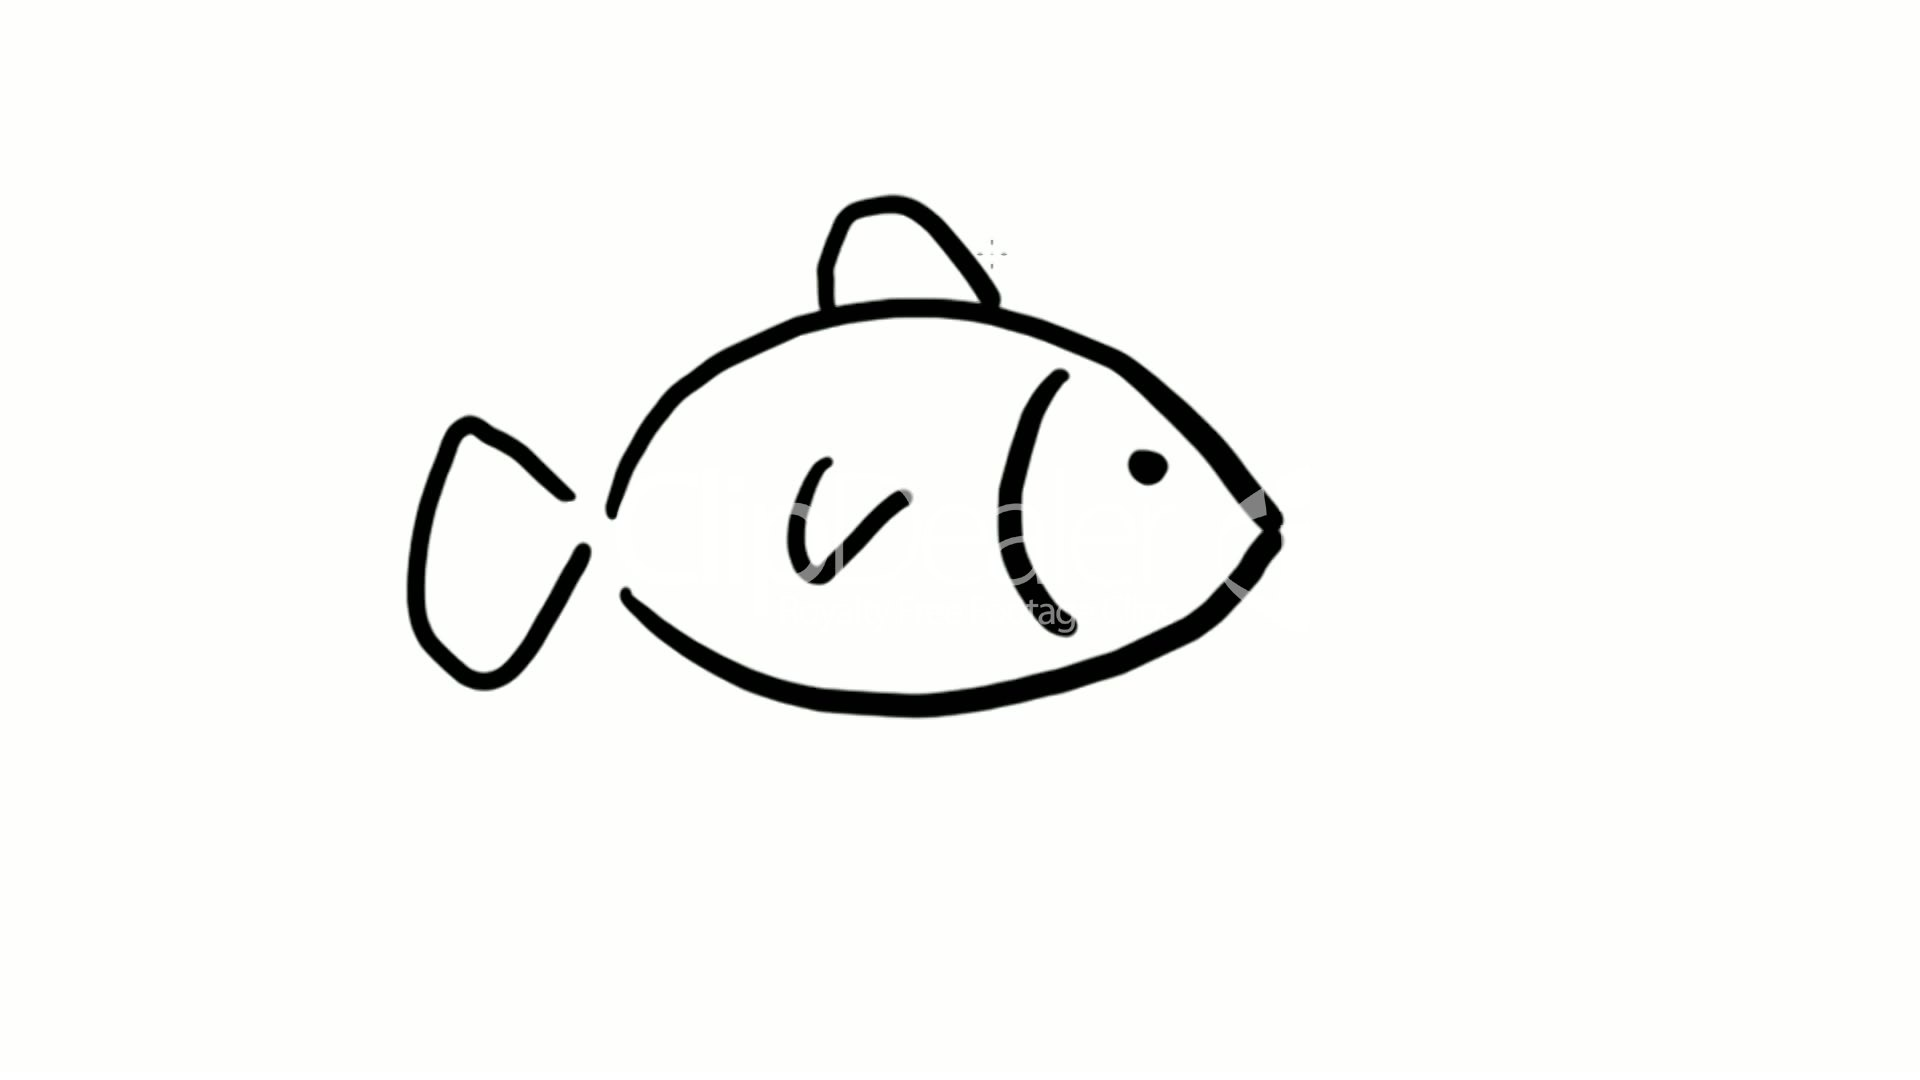 Clips drawing of fish